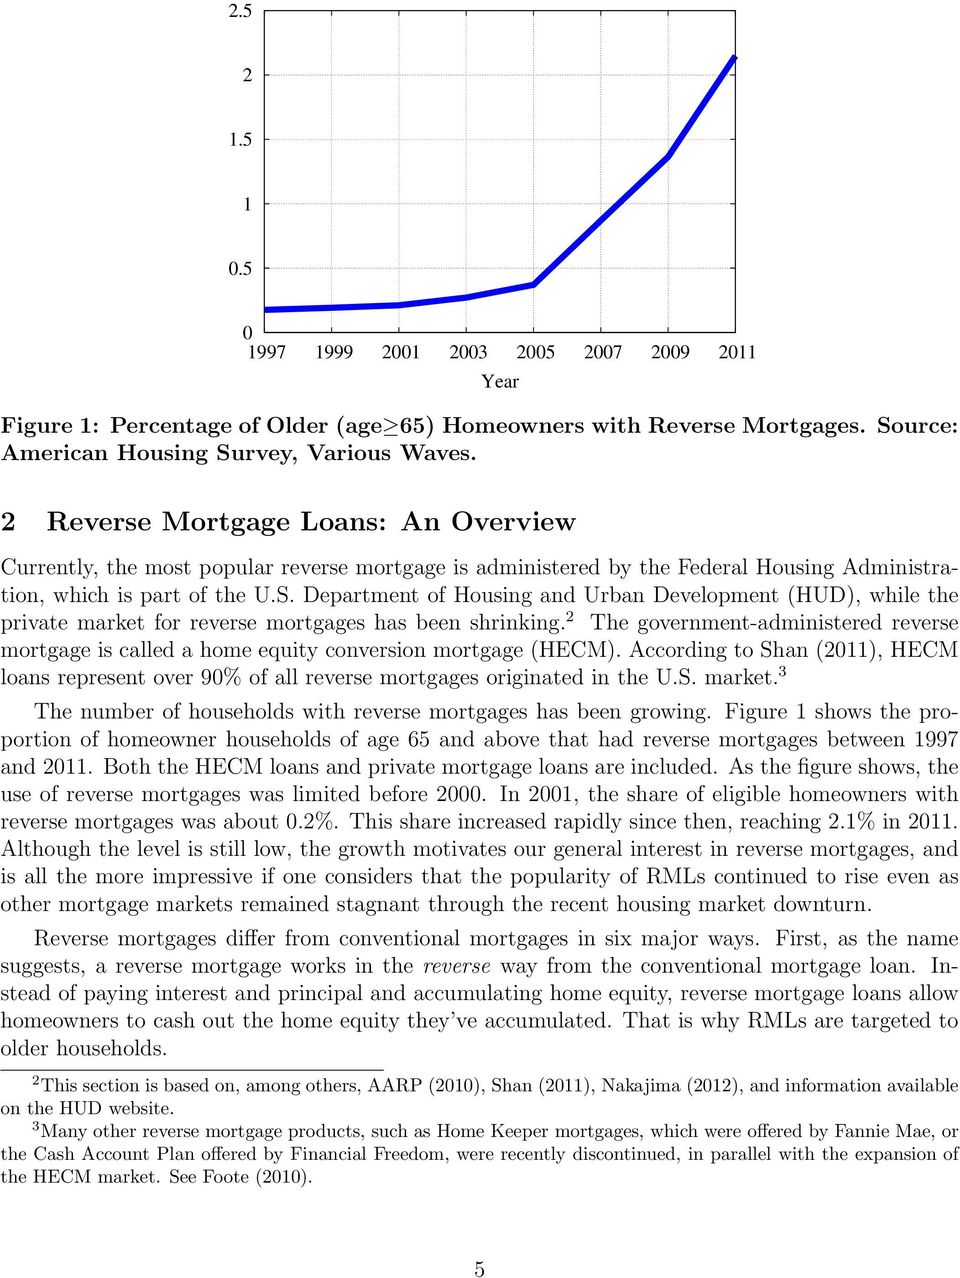 Department of Housing and Urban Development (HUD), while the private market for reverse mortgages has been shrinking.